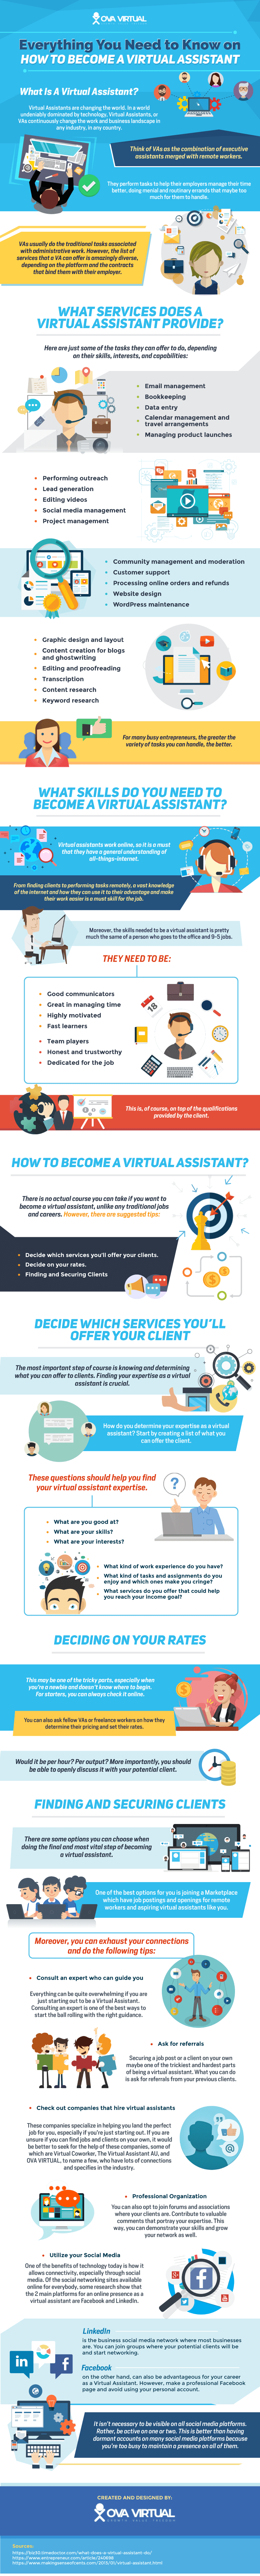 Everything You Need to Know on How to Become a Virtual Assistant